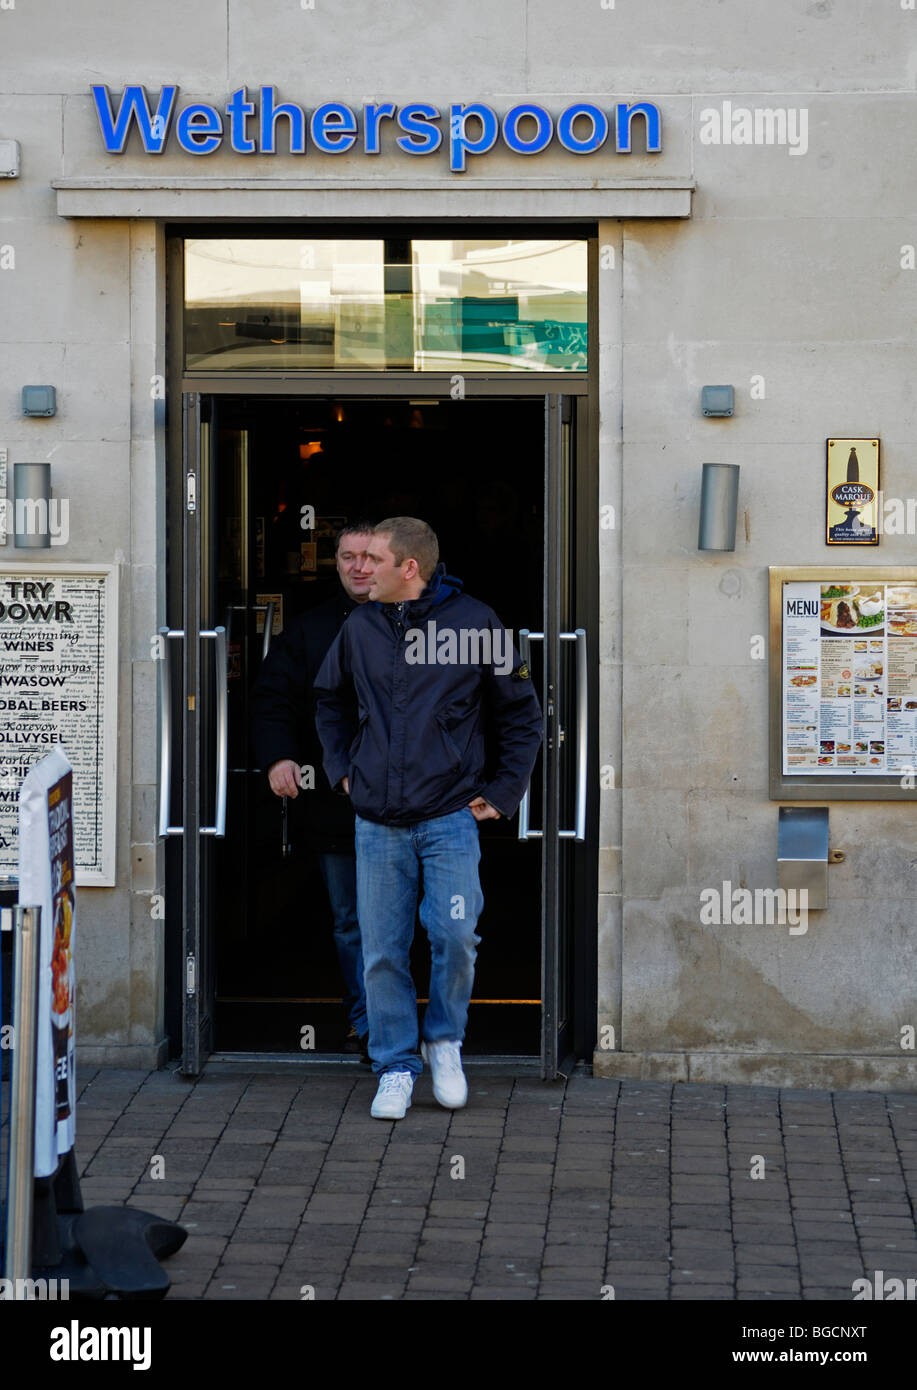 two men coming out of a wetherspoons pub in truro,cornwall,uk - Stock Image